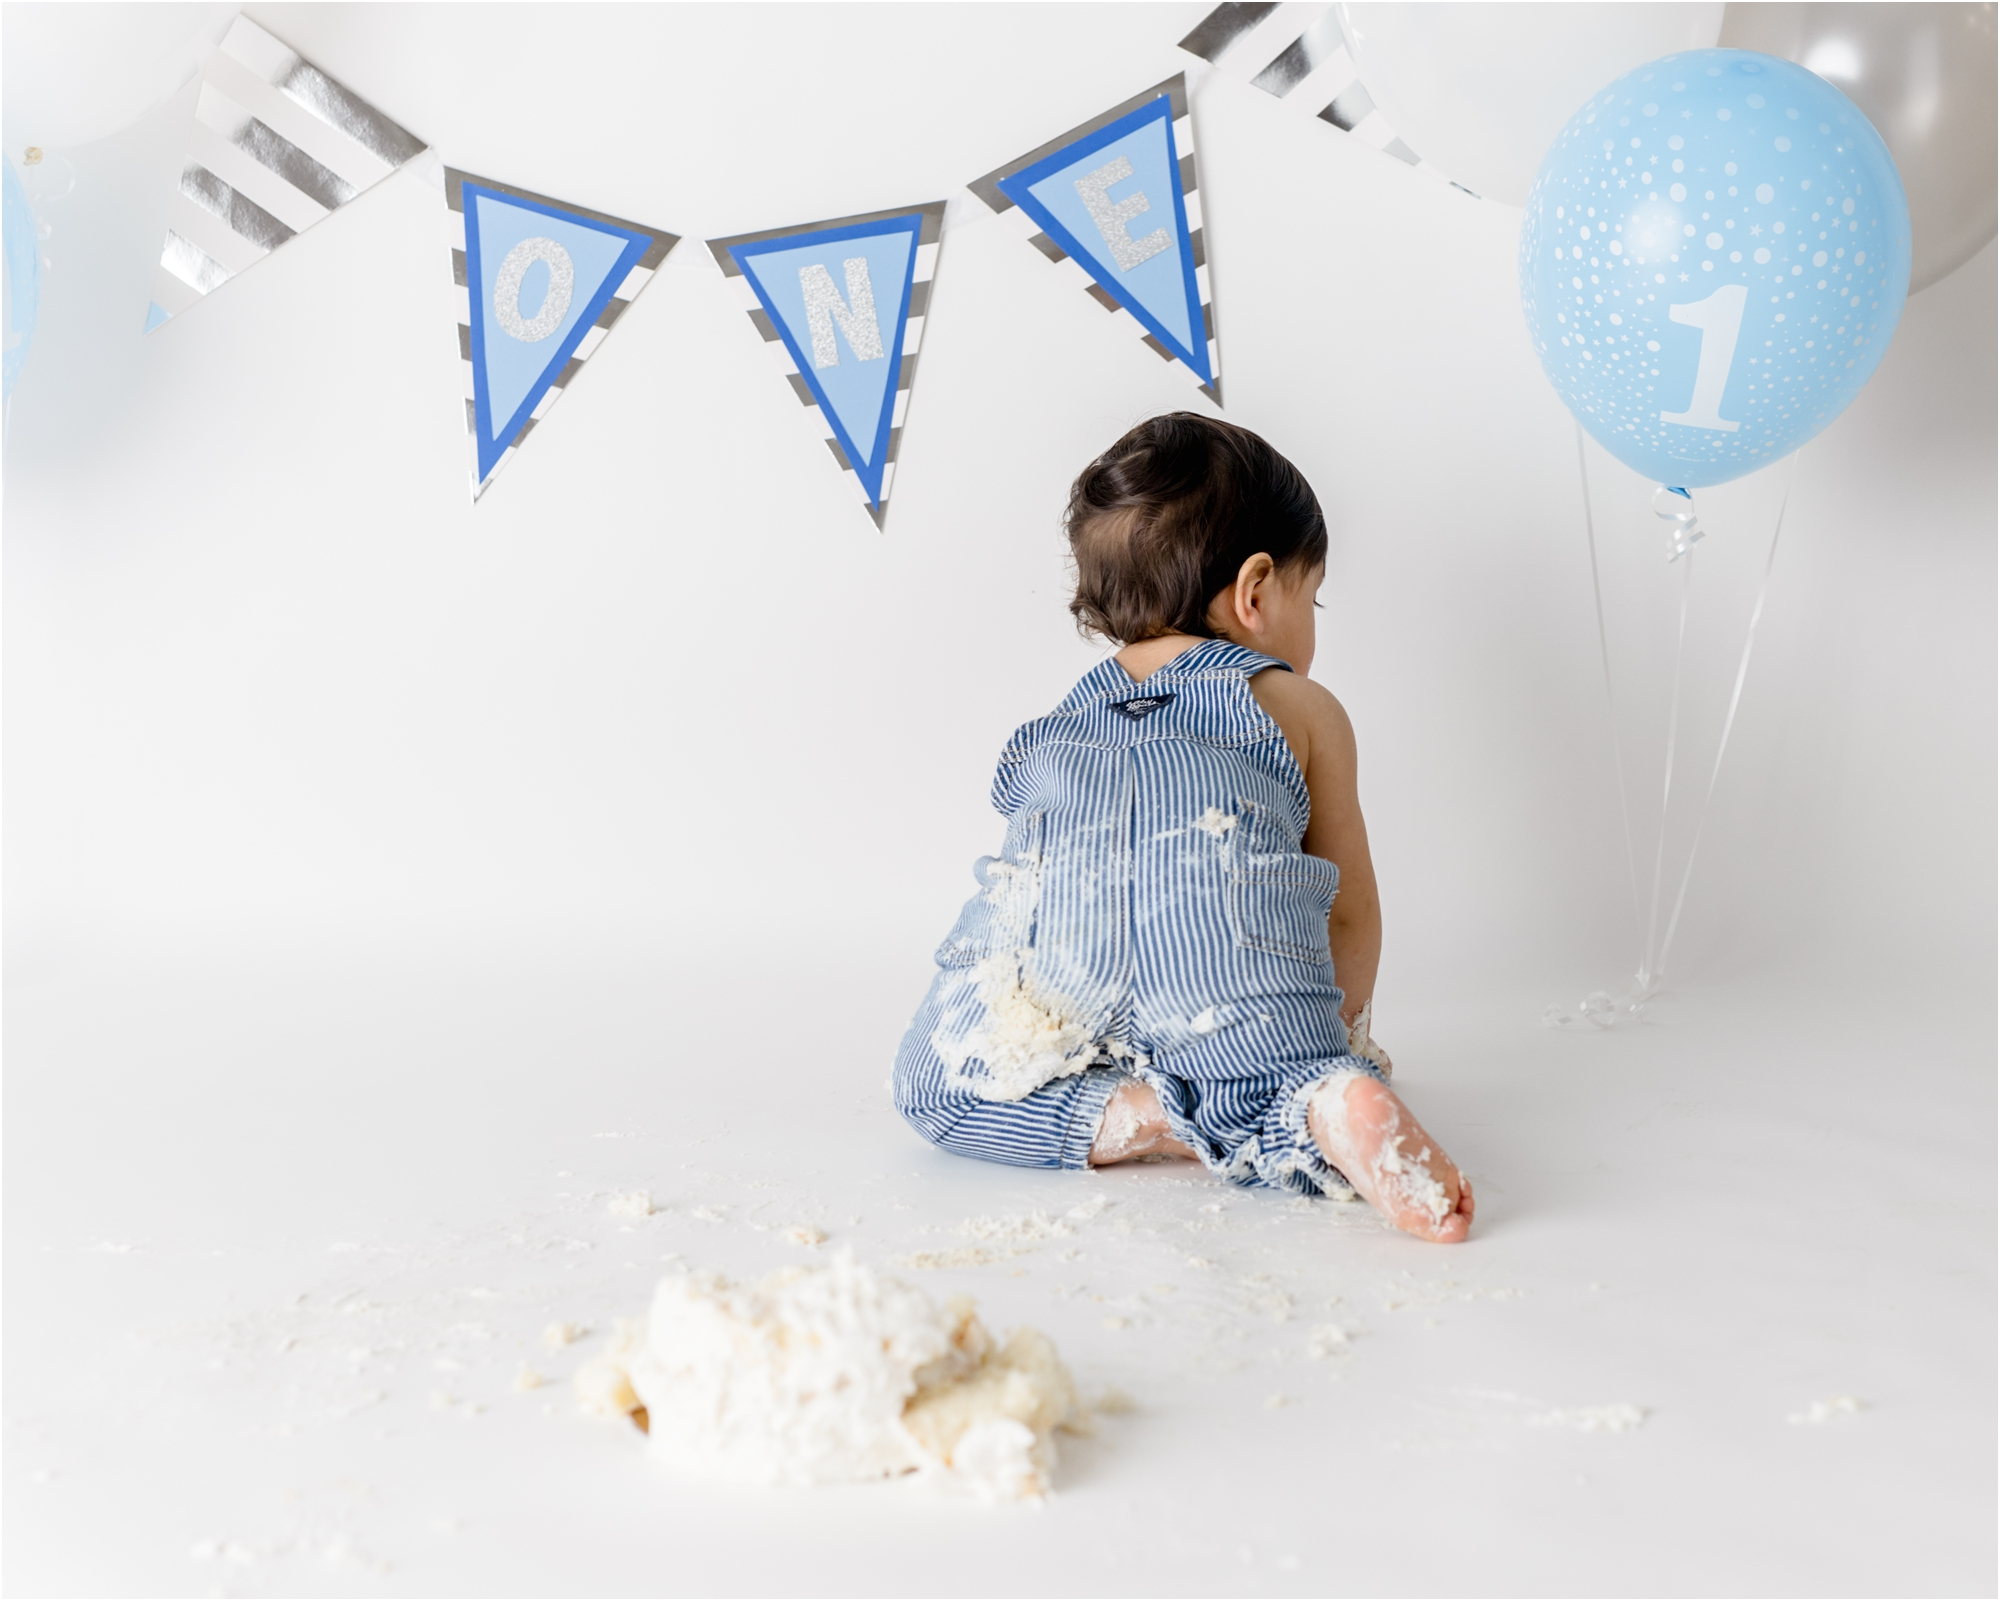 Baby crawling away from cake smash during in studio session. Photo by Lifetime of Clicks Photography.